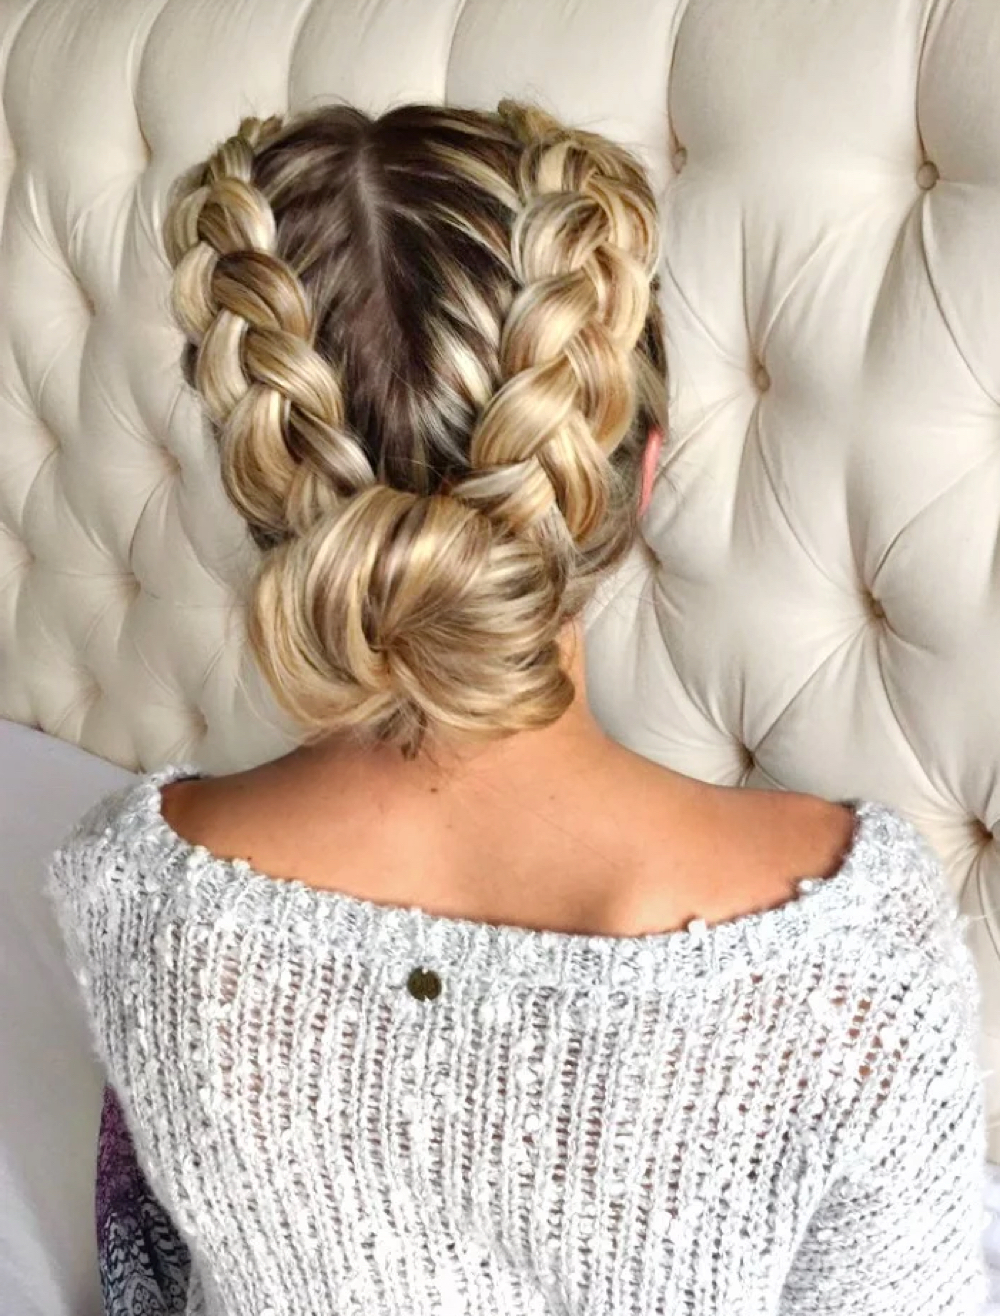 29 Gorgeous Braided Updo Ideas For 2019 Regarding Well Liked Crown Braid Updo Hairstyles (View 17 of 20)